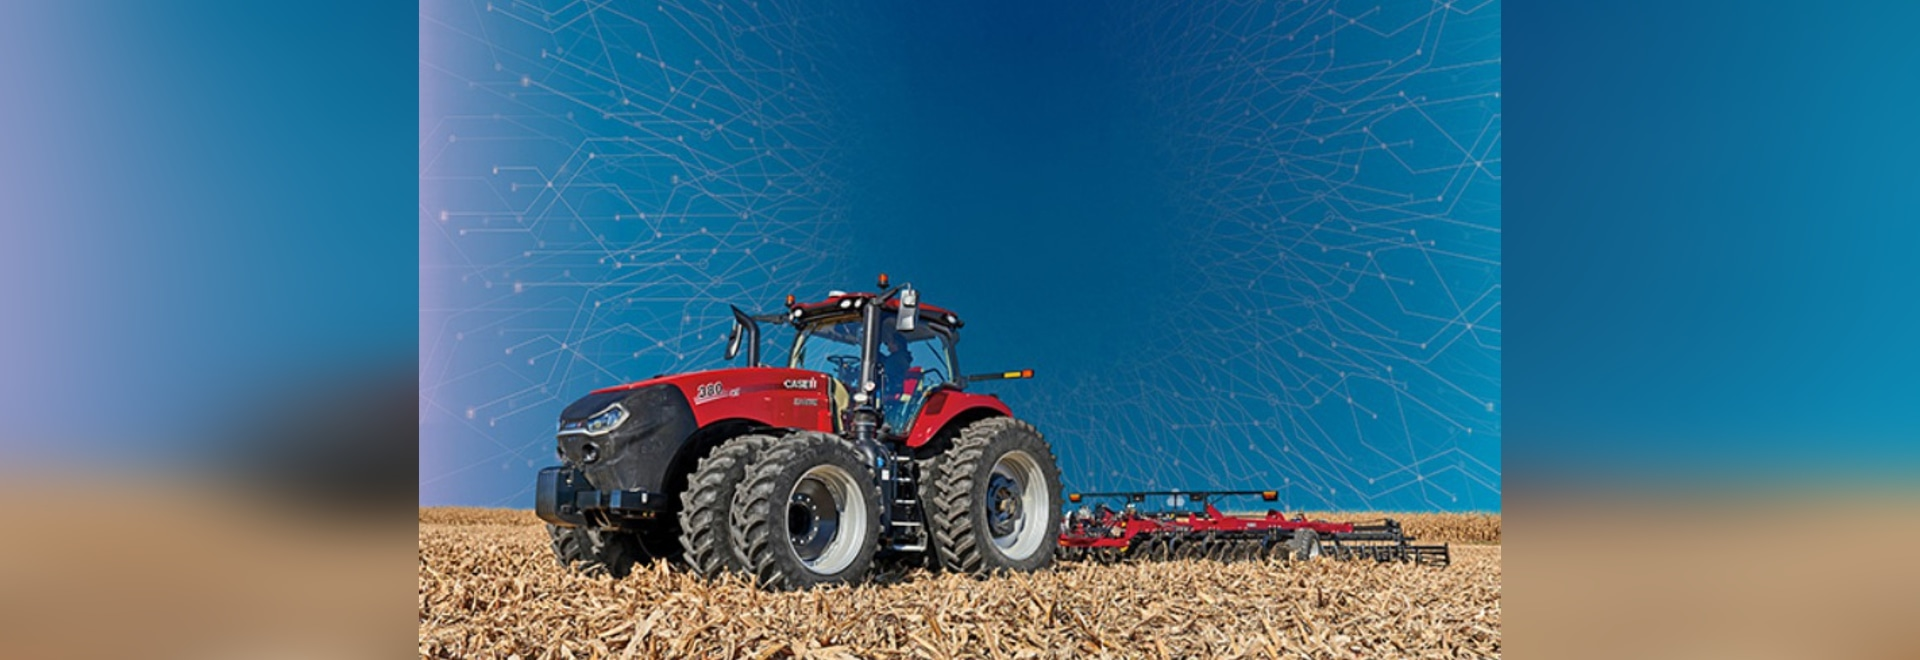 The 2020 Case IH AFS Connect Magnum is designed to be the central controller of field operations. (Photo courtesy of Case IH)